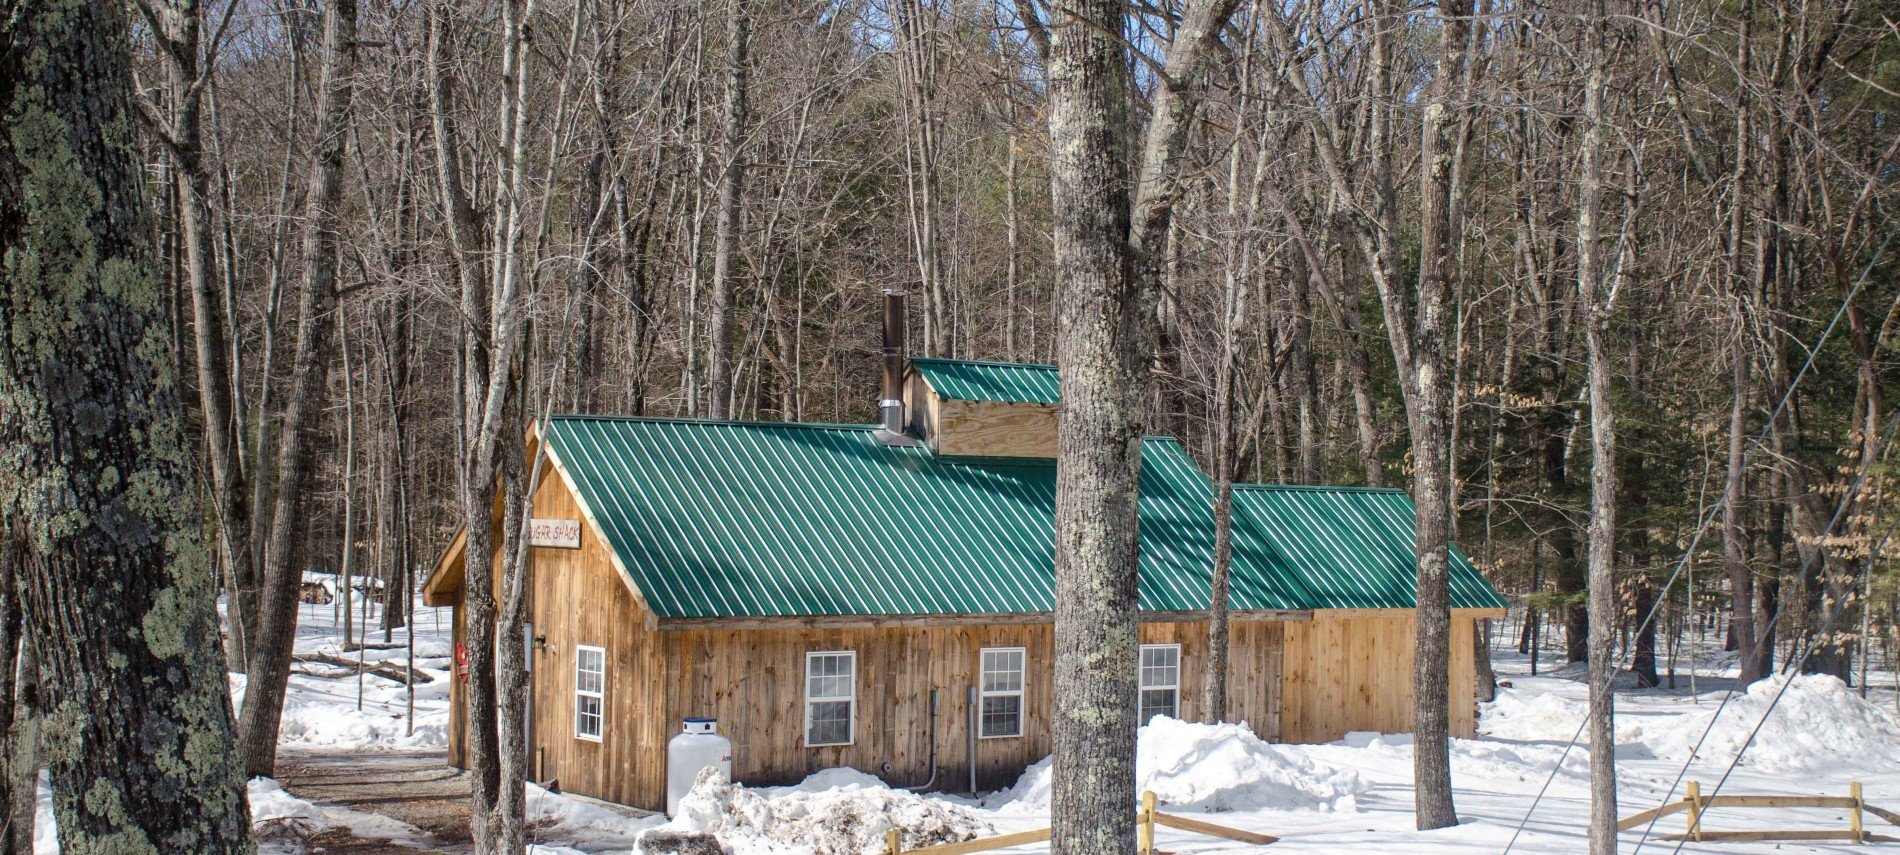 Sugar Shack at the Hundred Acre Wood, Intervale, NH